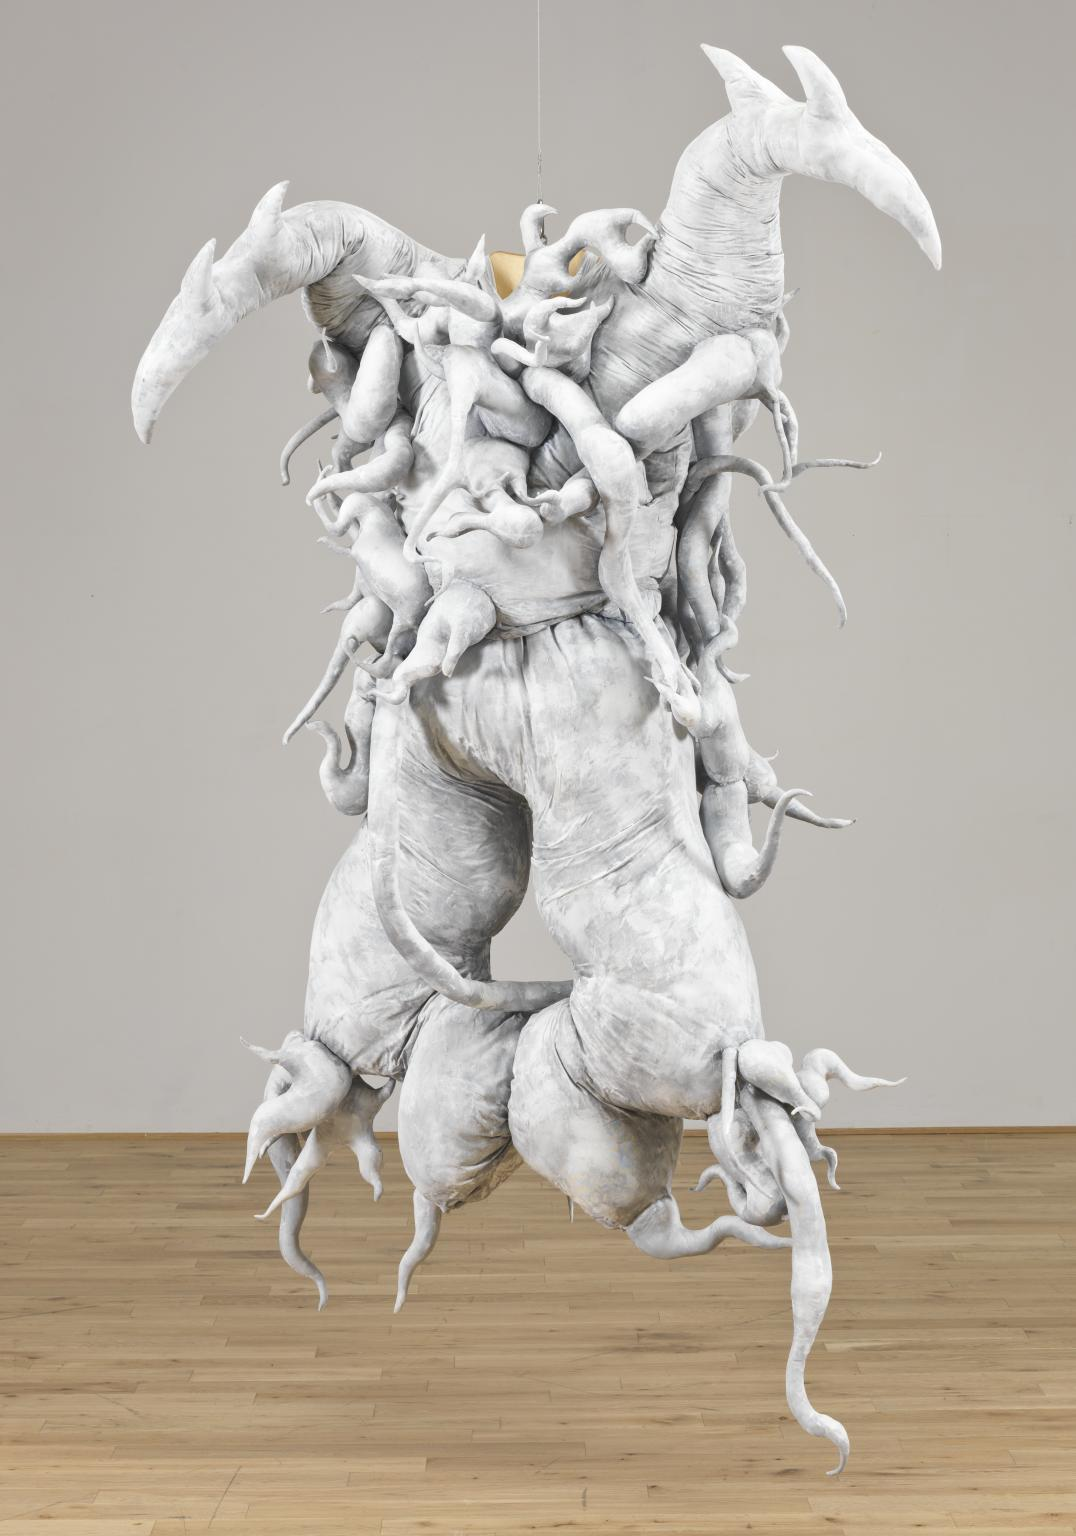 Untitled (Cravings White) 1988, reconstructed 2011 by Lee Bul born 1964